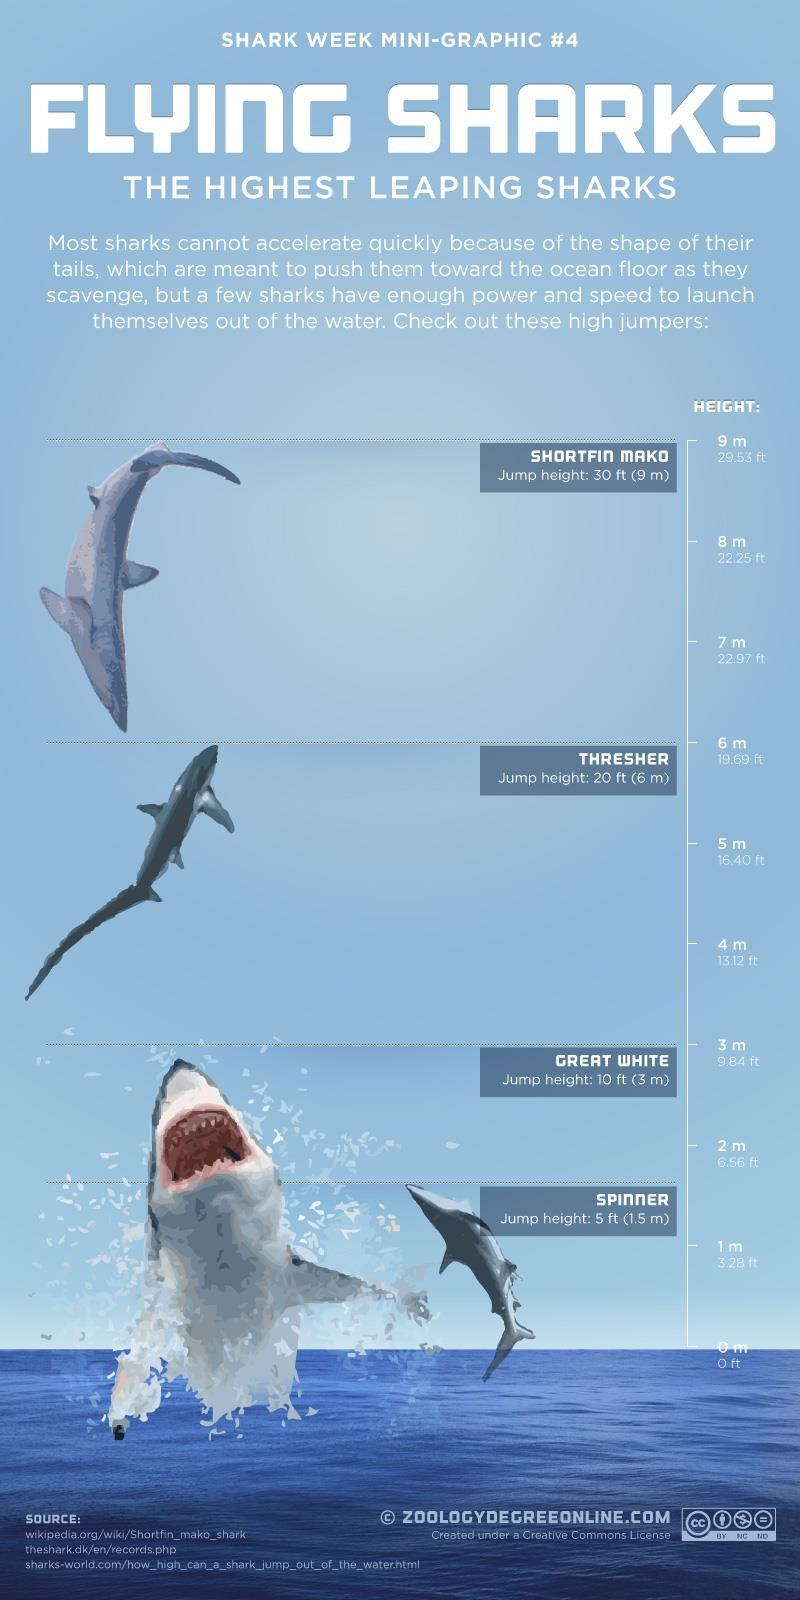 mad-as-a-marine-biologist:  Highest leaping sharks